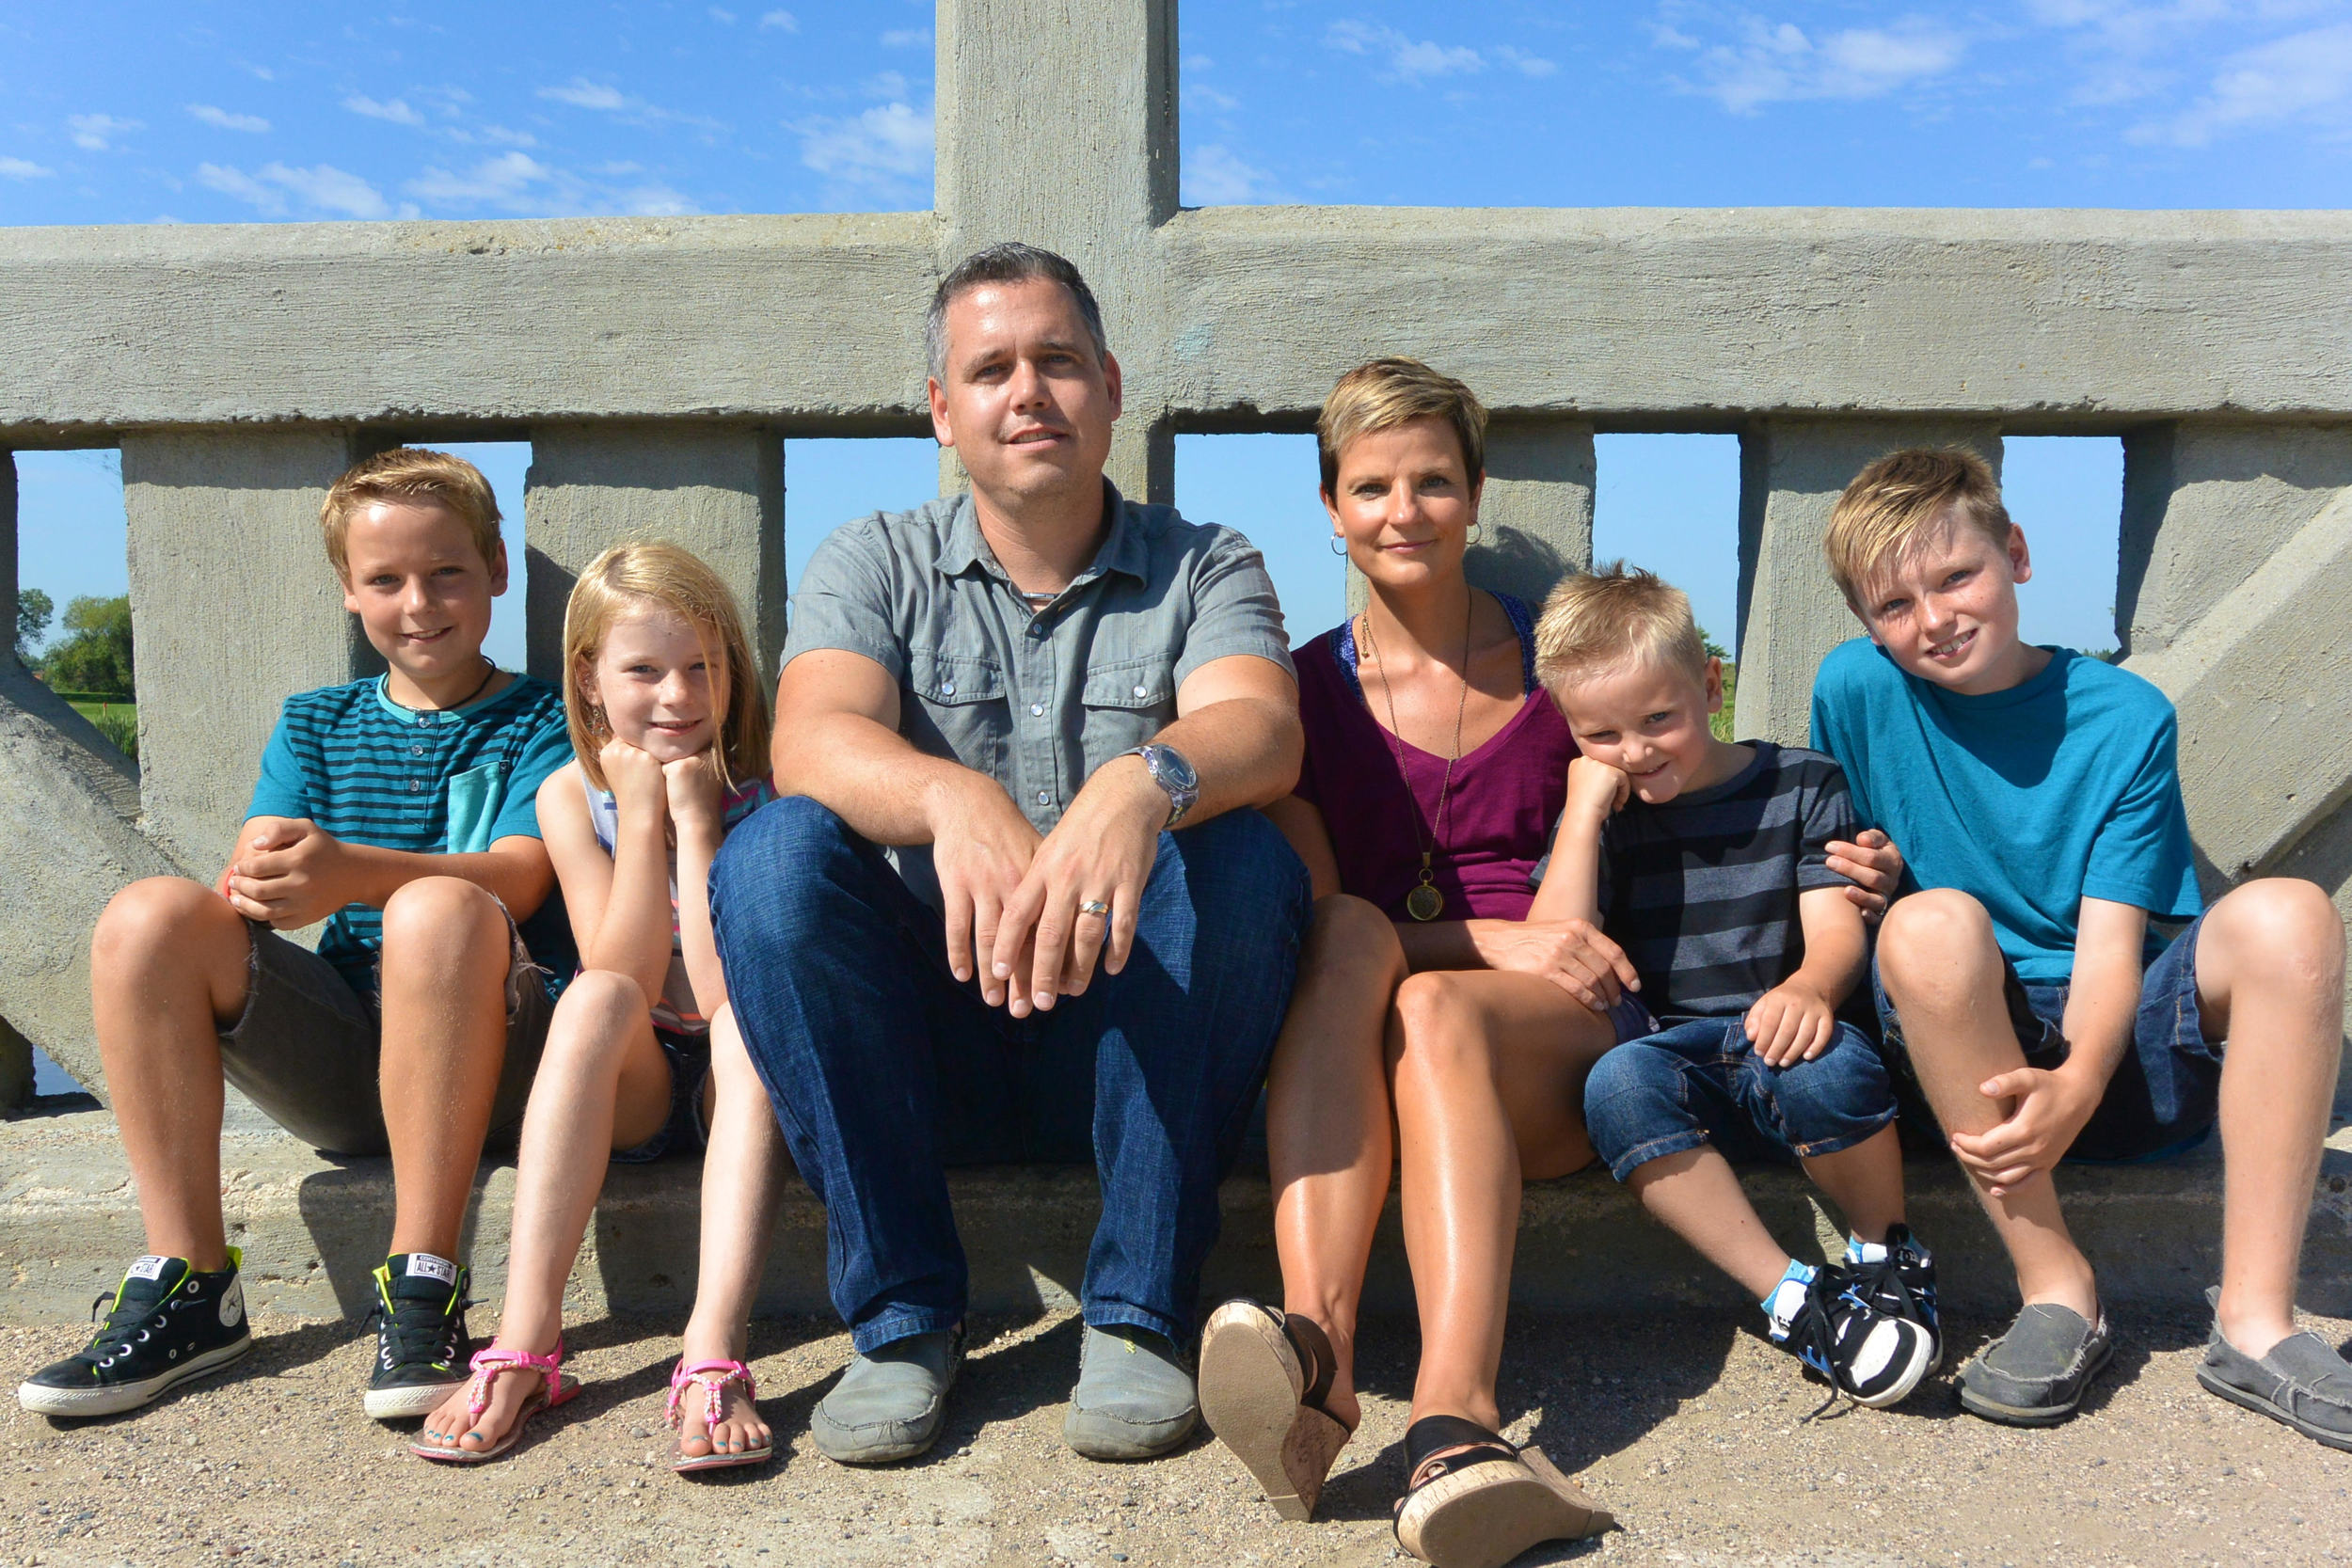 Pastor Blair with his wife, Sharon, and their four kids: Wyatt, Maguire, Emerson and Keaton